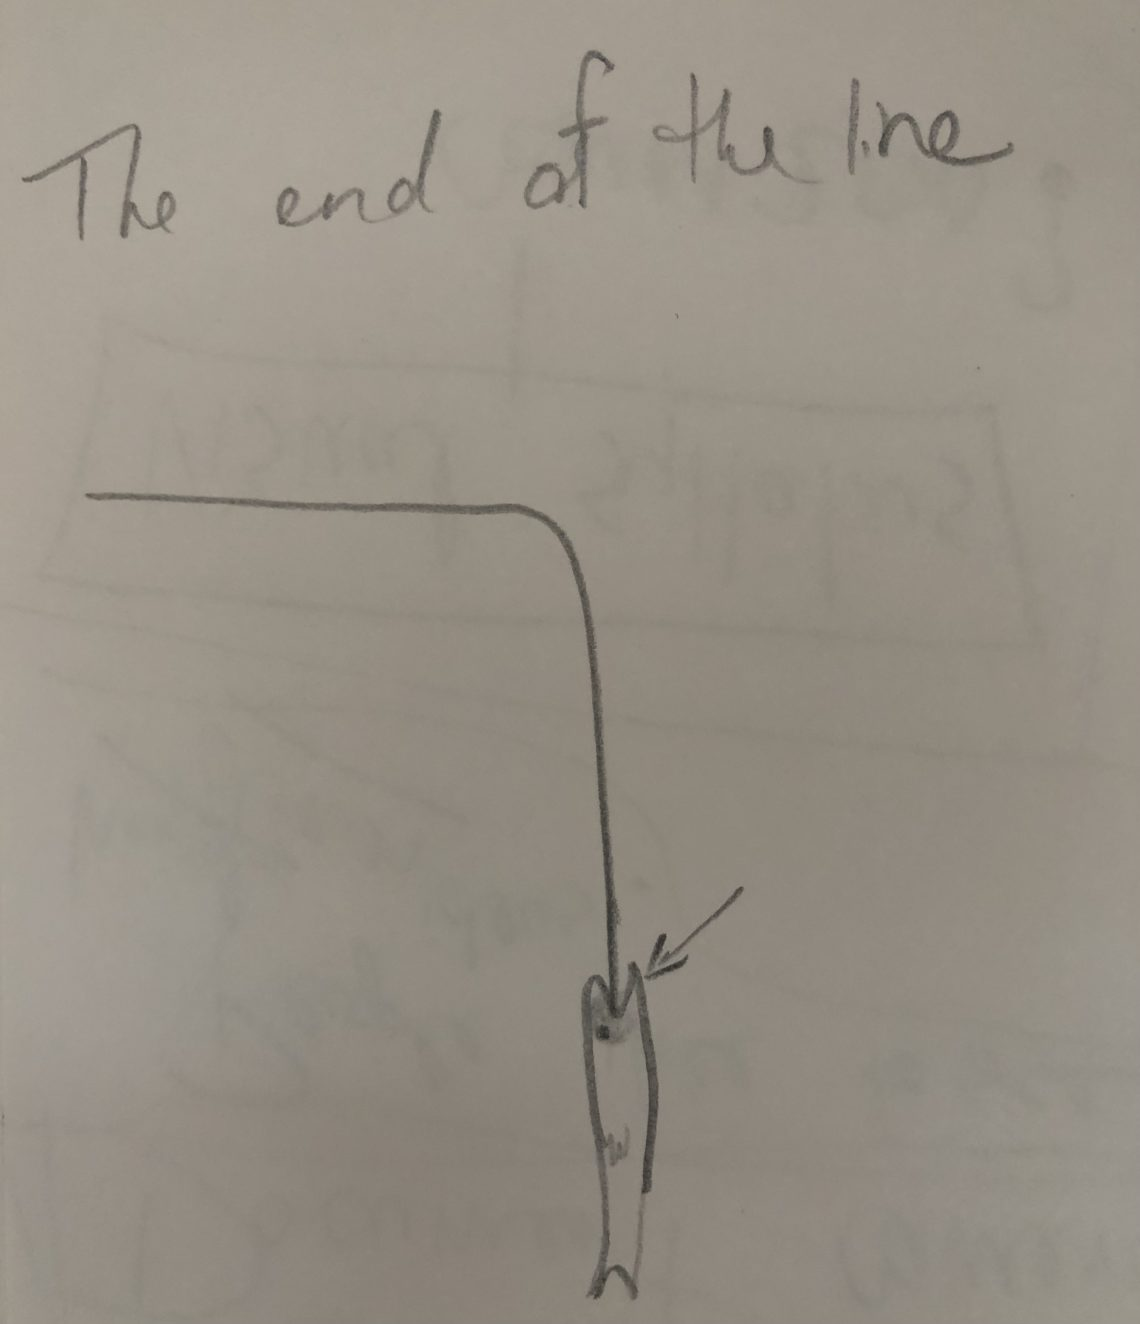 A crude pencil drawing of a fish on a fishing line